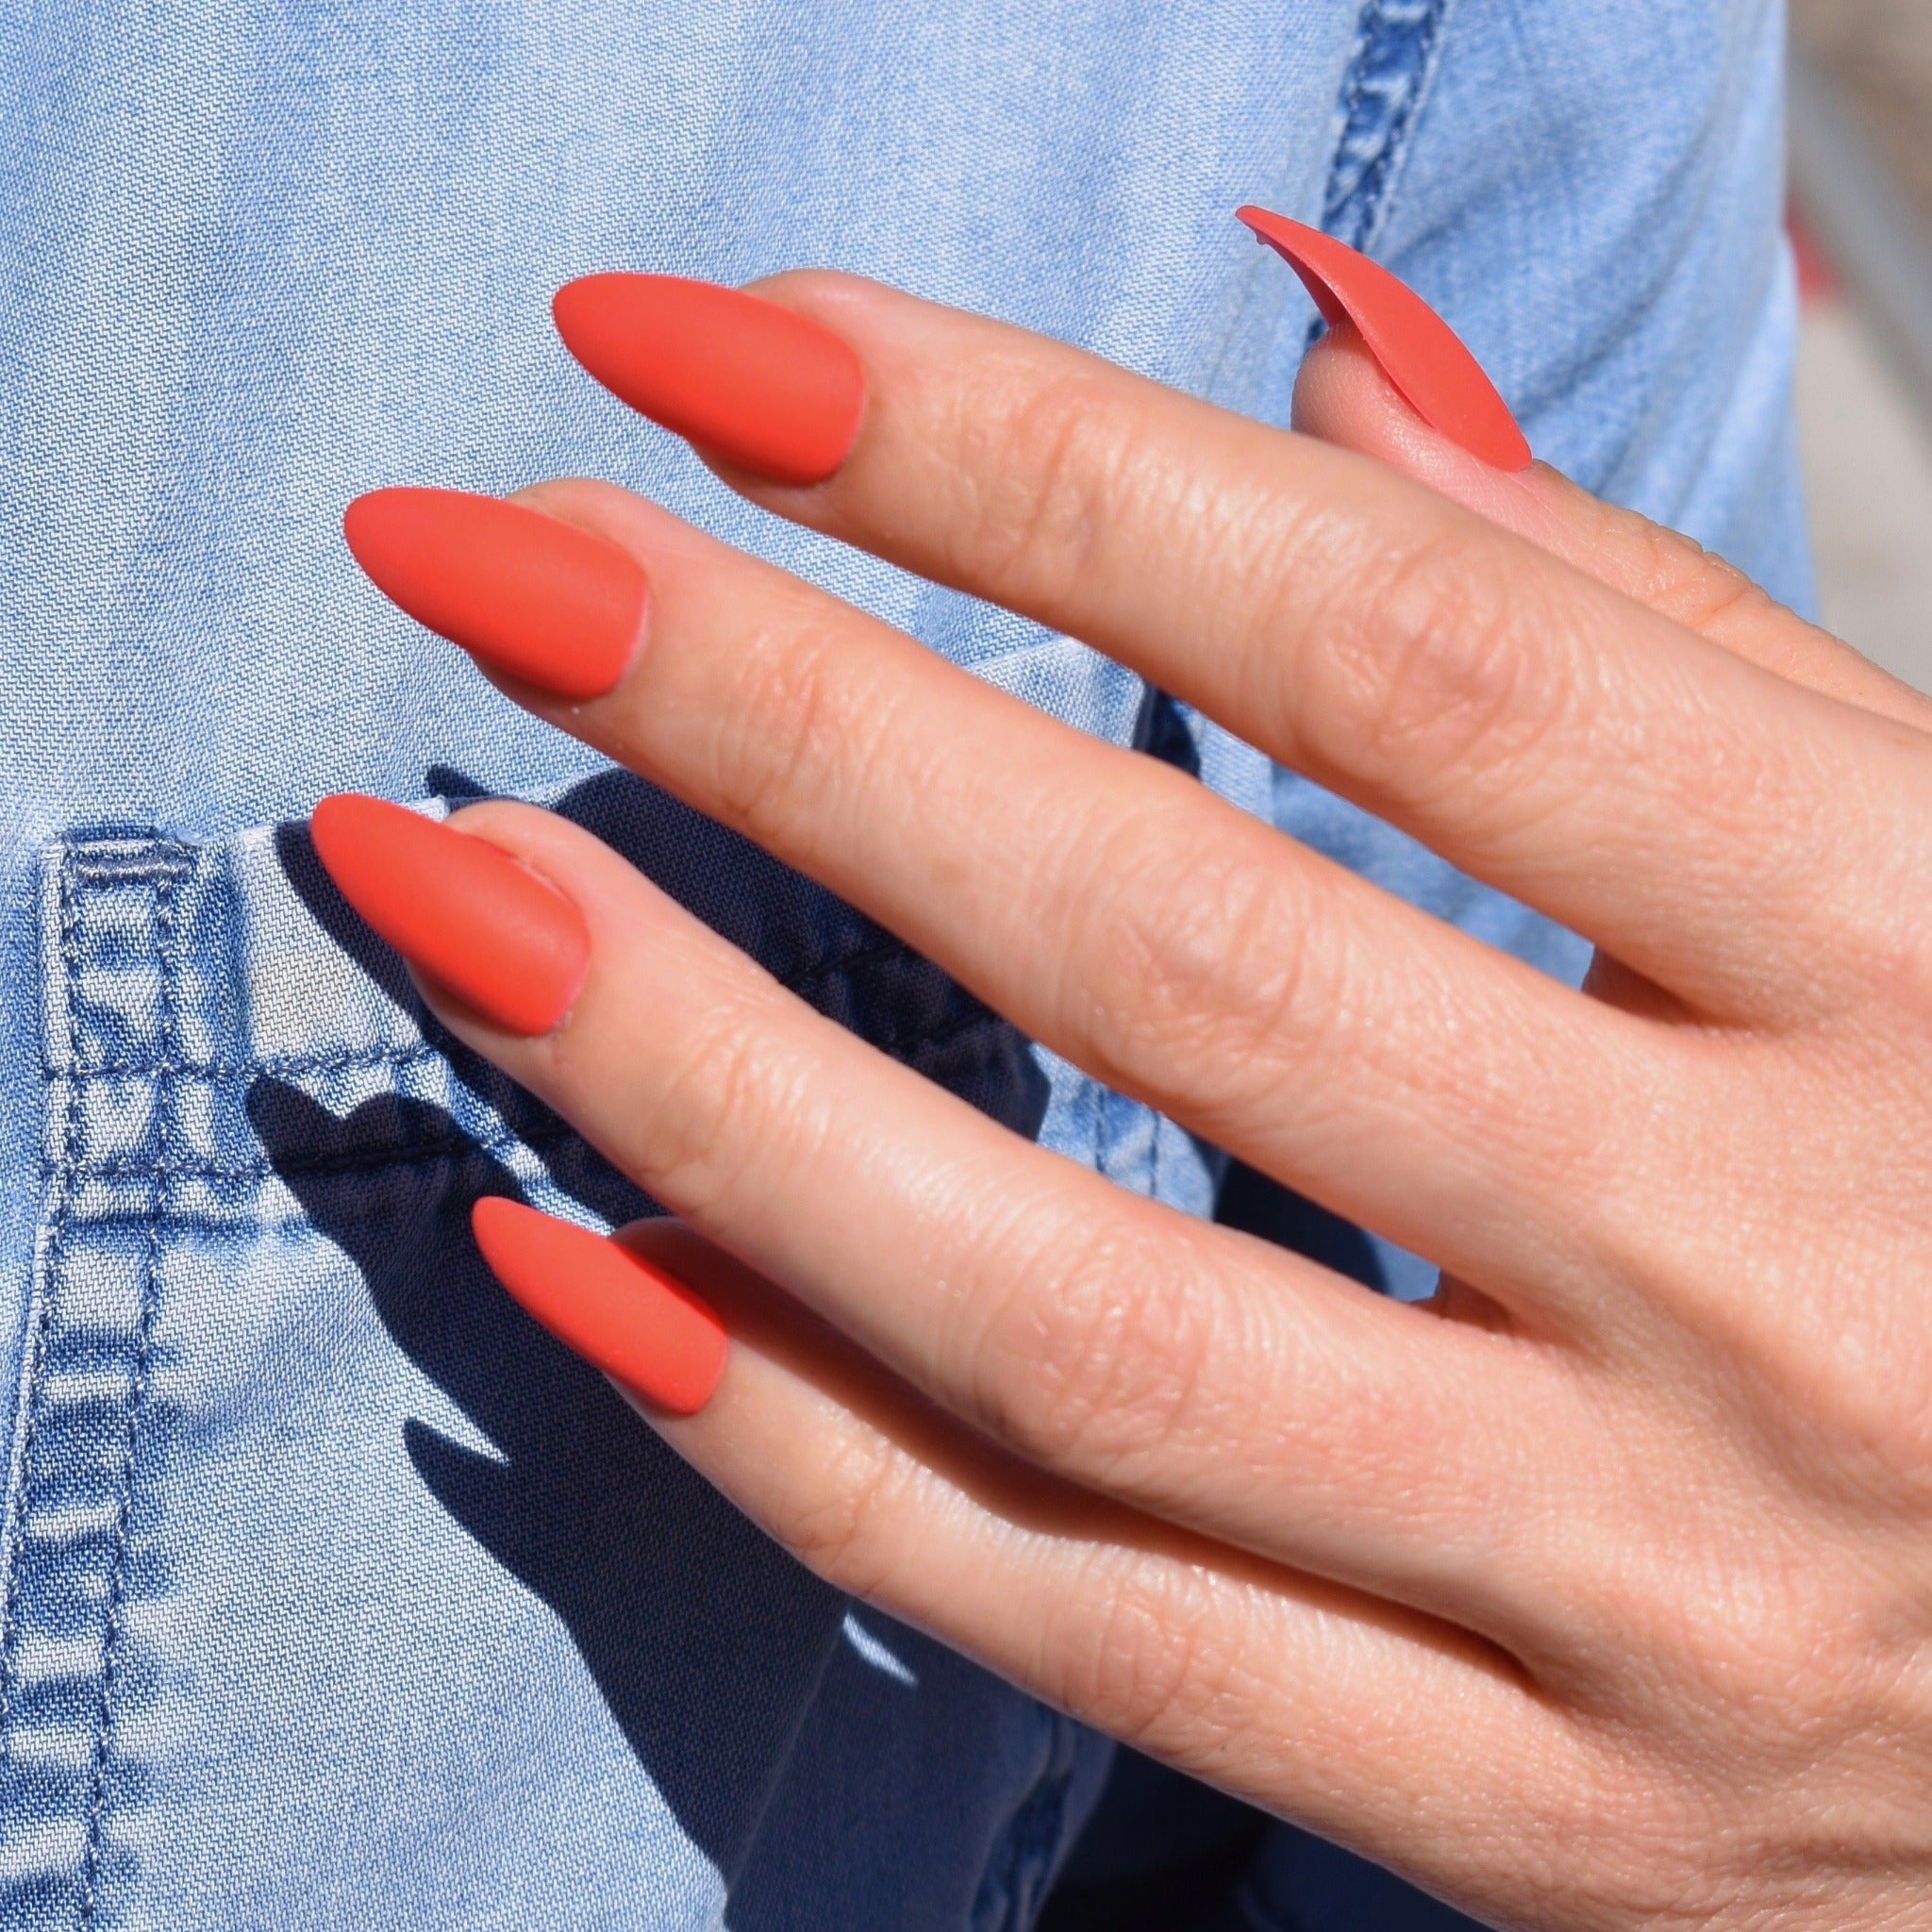 Gel polish hand-painted press on nails on one had. The almond shaped nails are in a vibrant and bright orange with a matte finish. The models hand rests over a denim shirt.